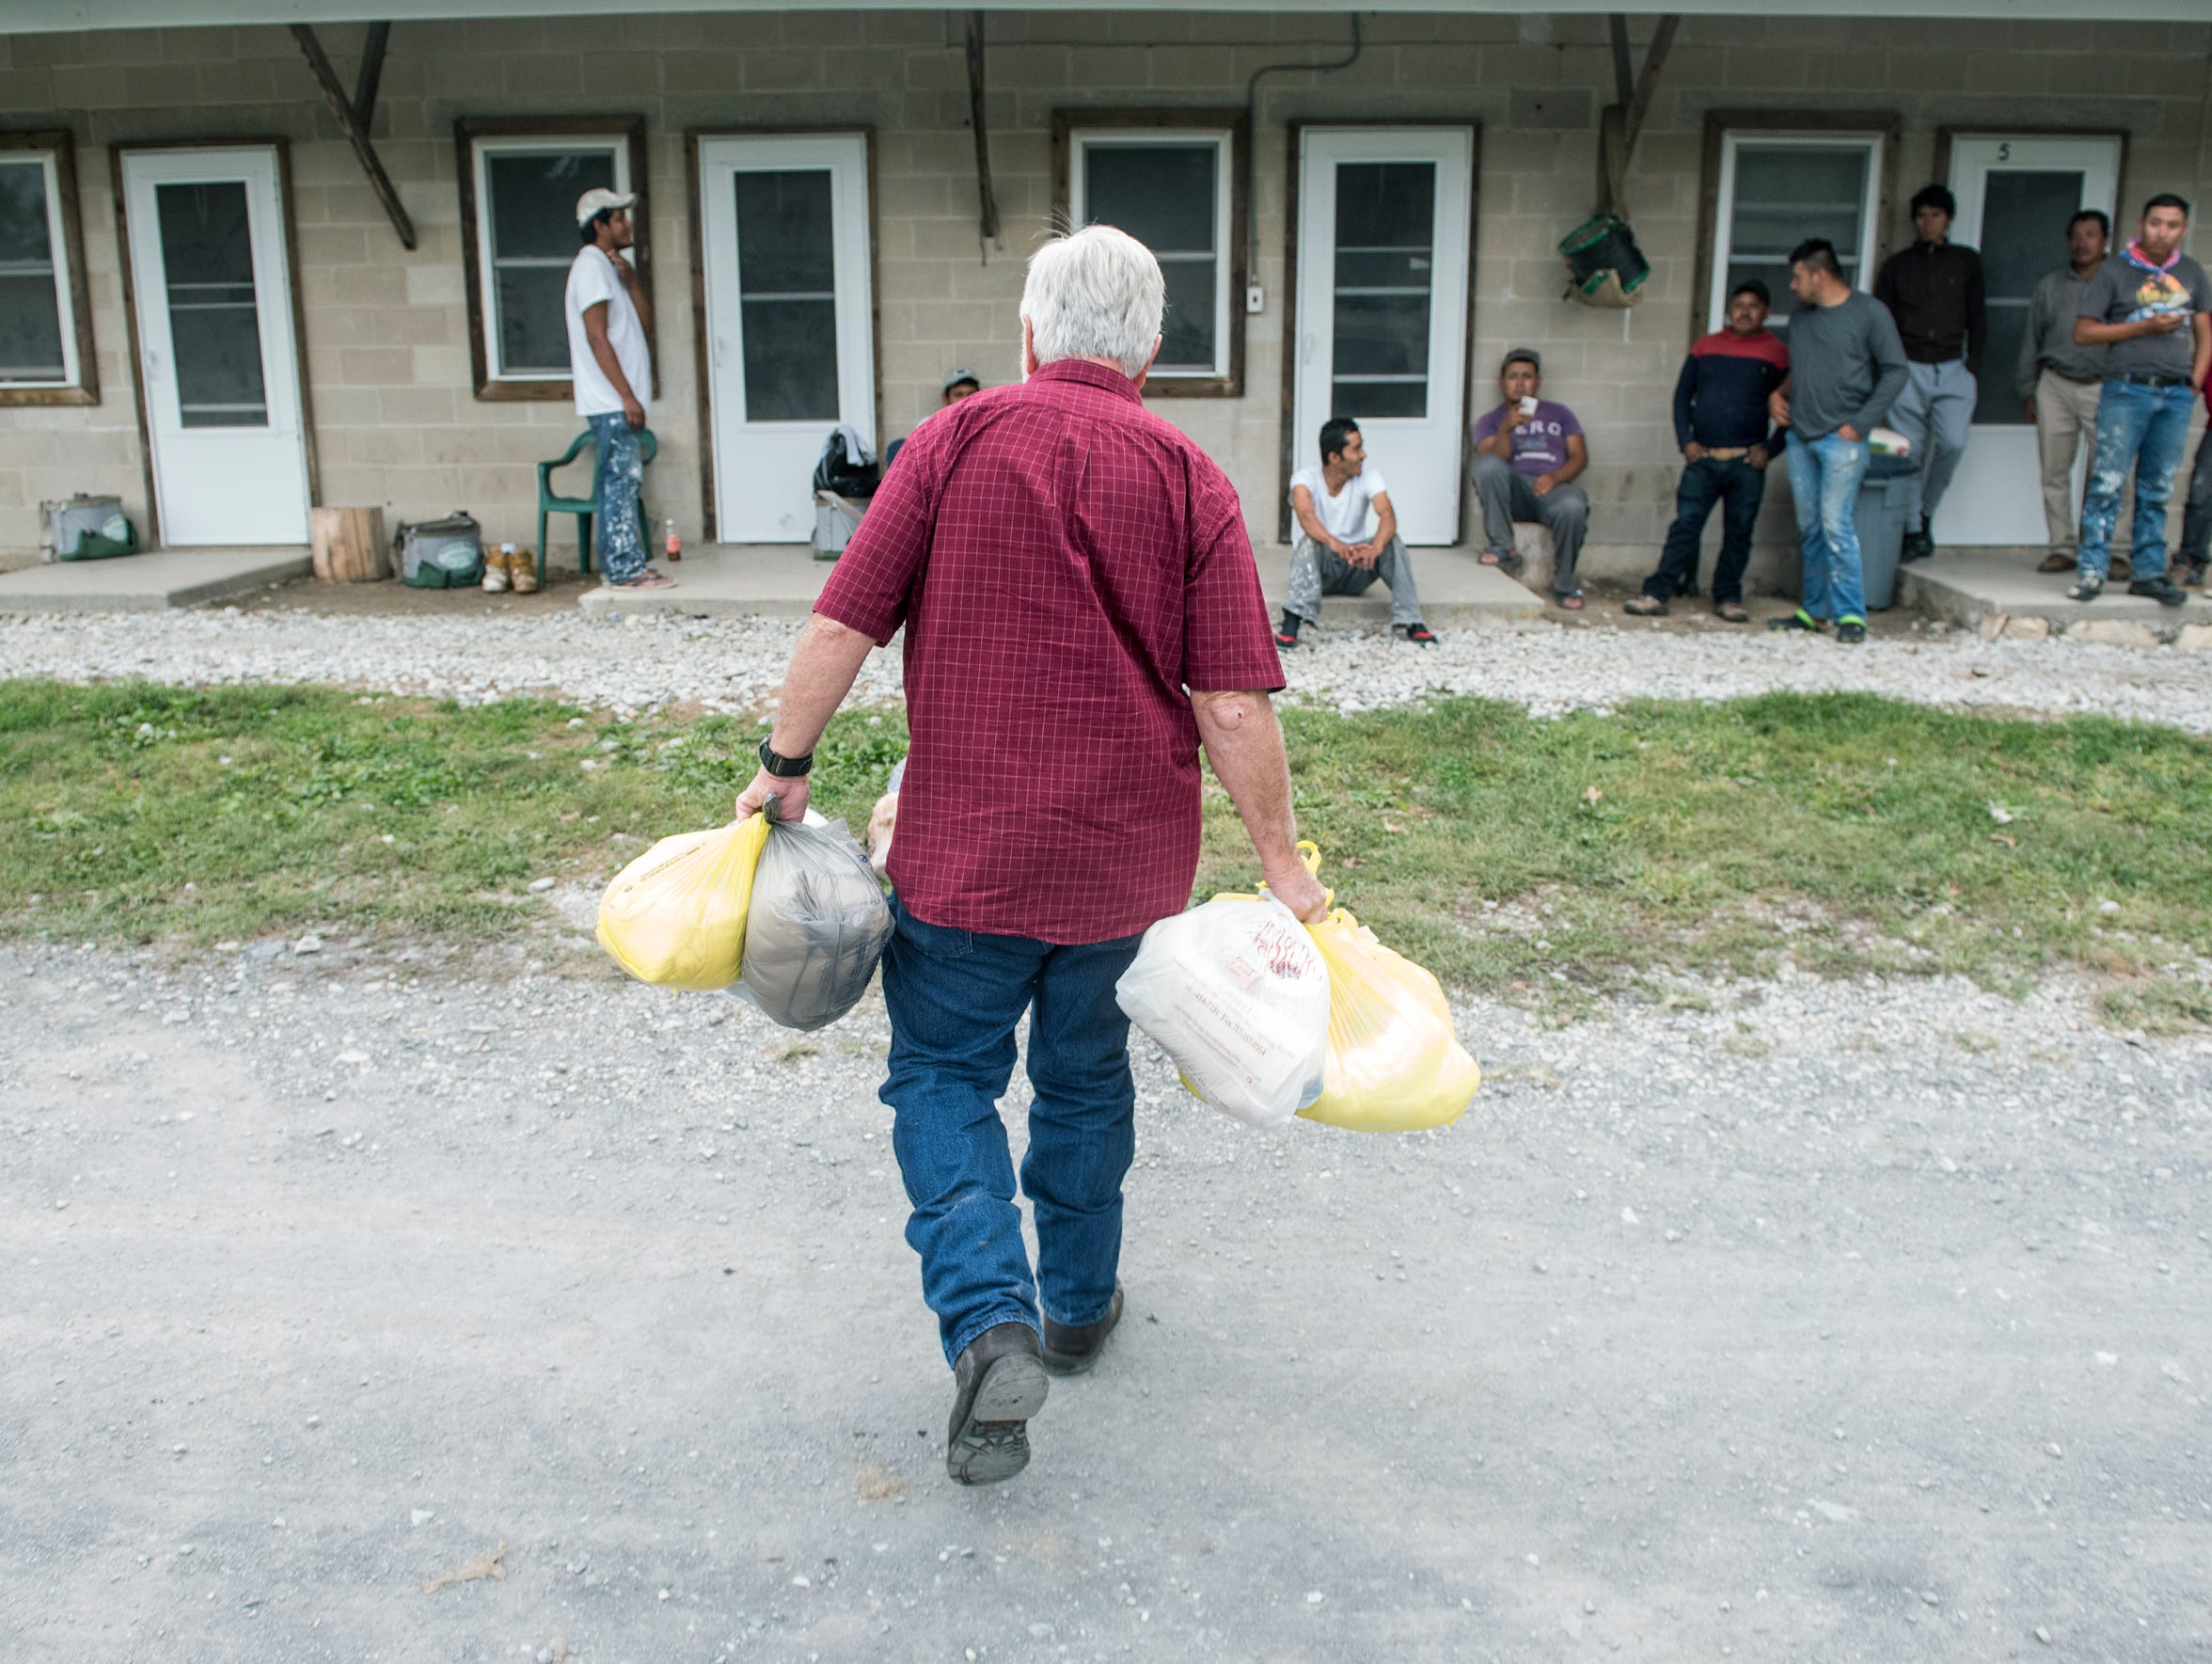 Reverend Roddy Runyan walks bags of toiletries to migrant